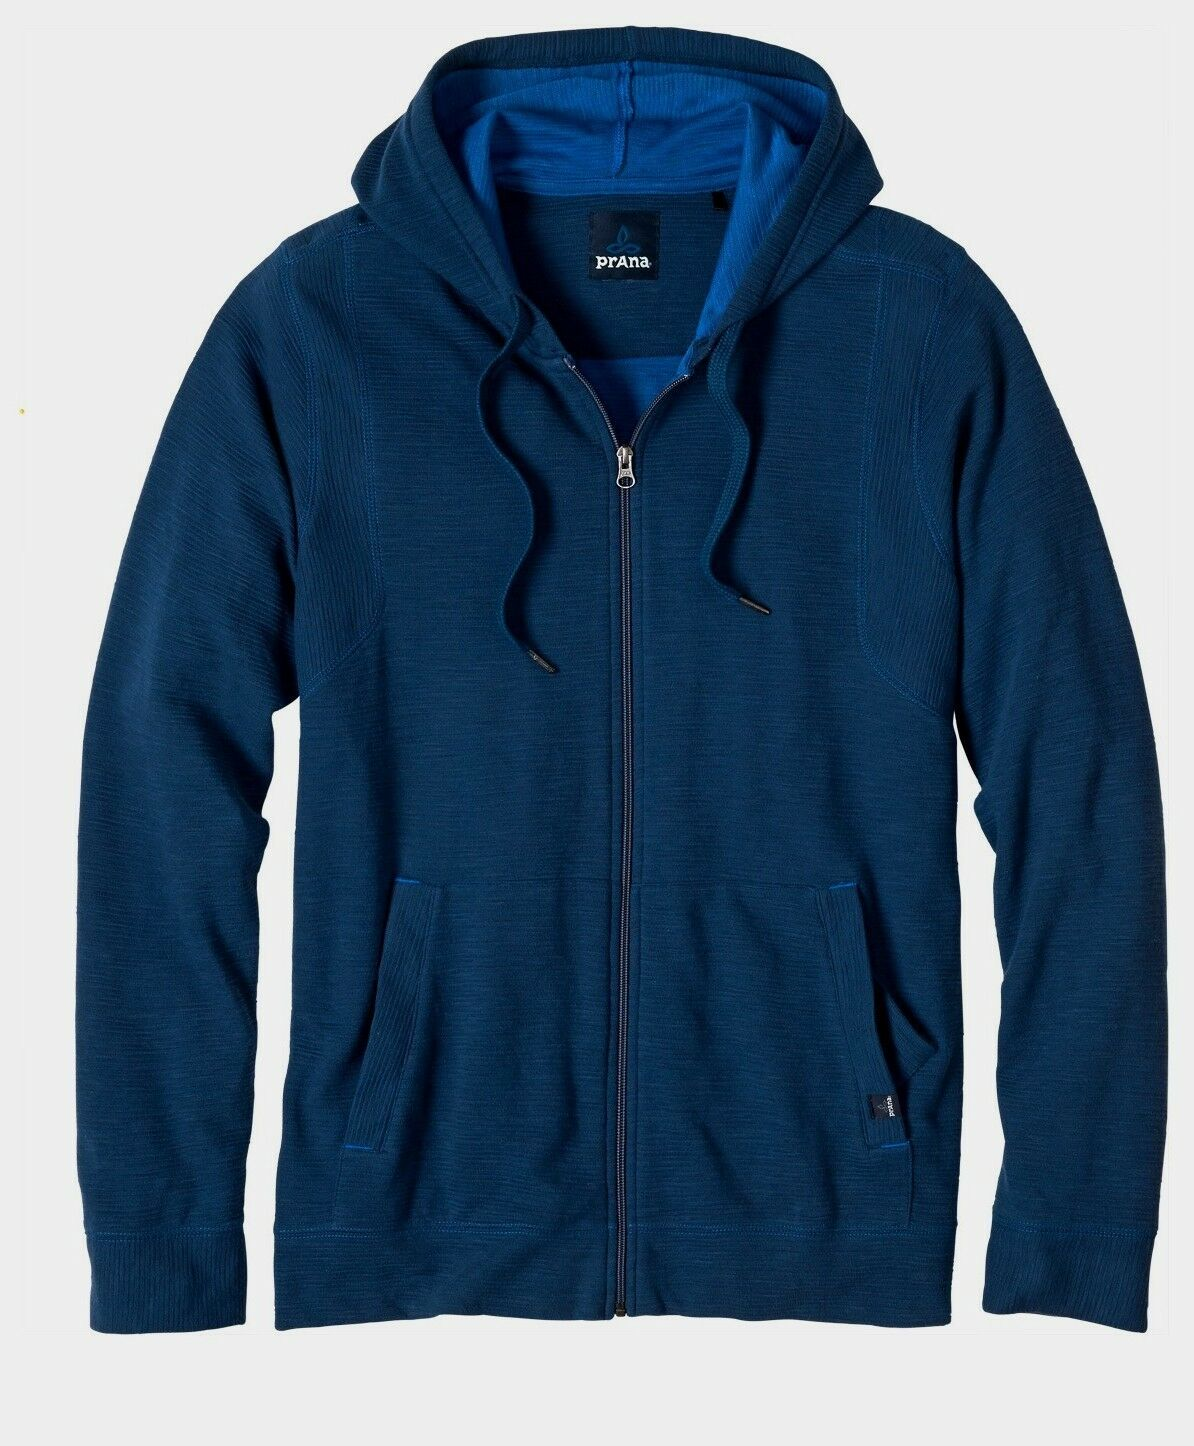 Prana Barringer Full Zip Hoodie Men's, Hoody for Men, bluee ridge